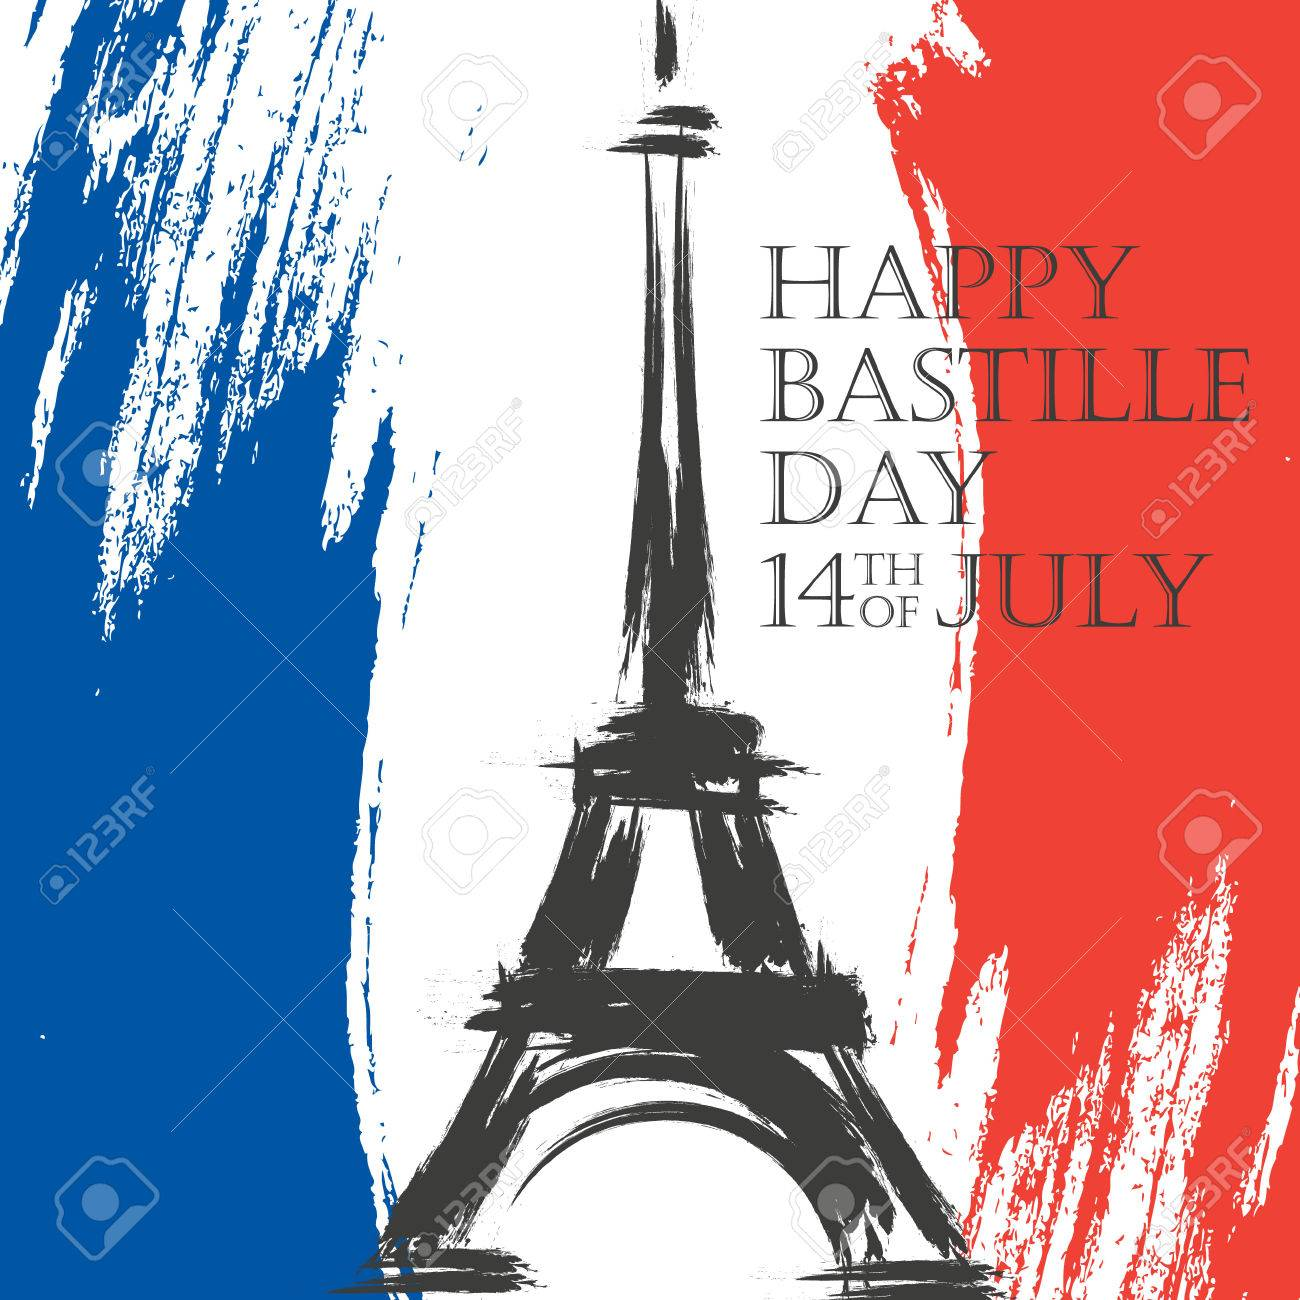 Happy bastille day greeting card 14th of july brush stroke holiday happy bastille day greeting card 14th of july brush stroke holiday background in colors of m4hsunfo